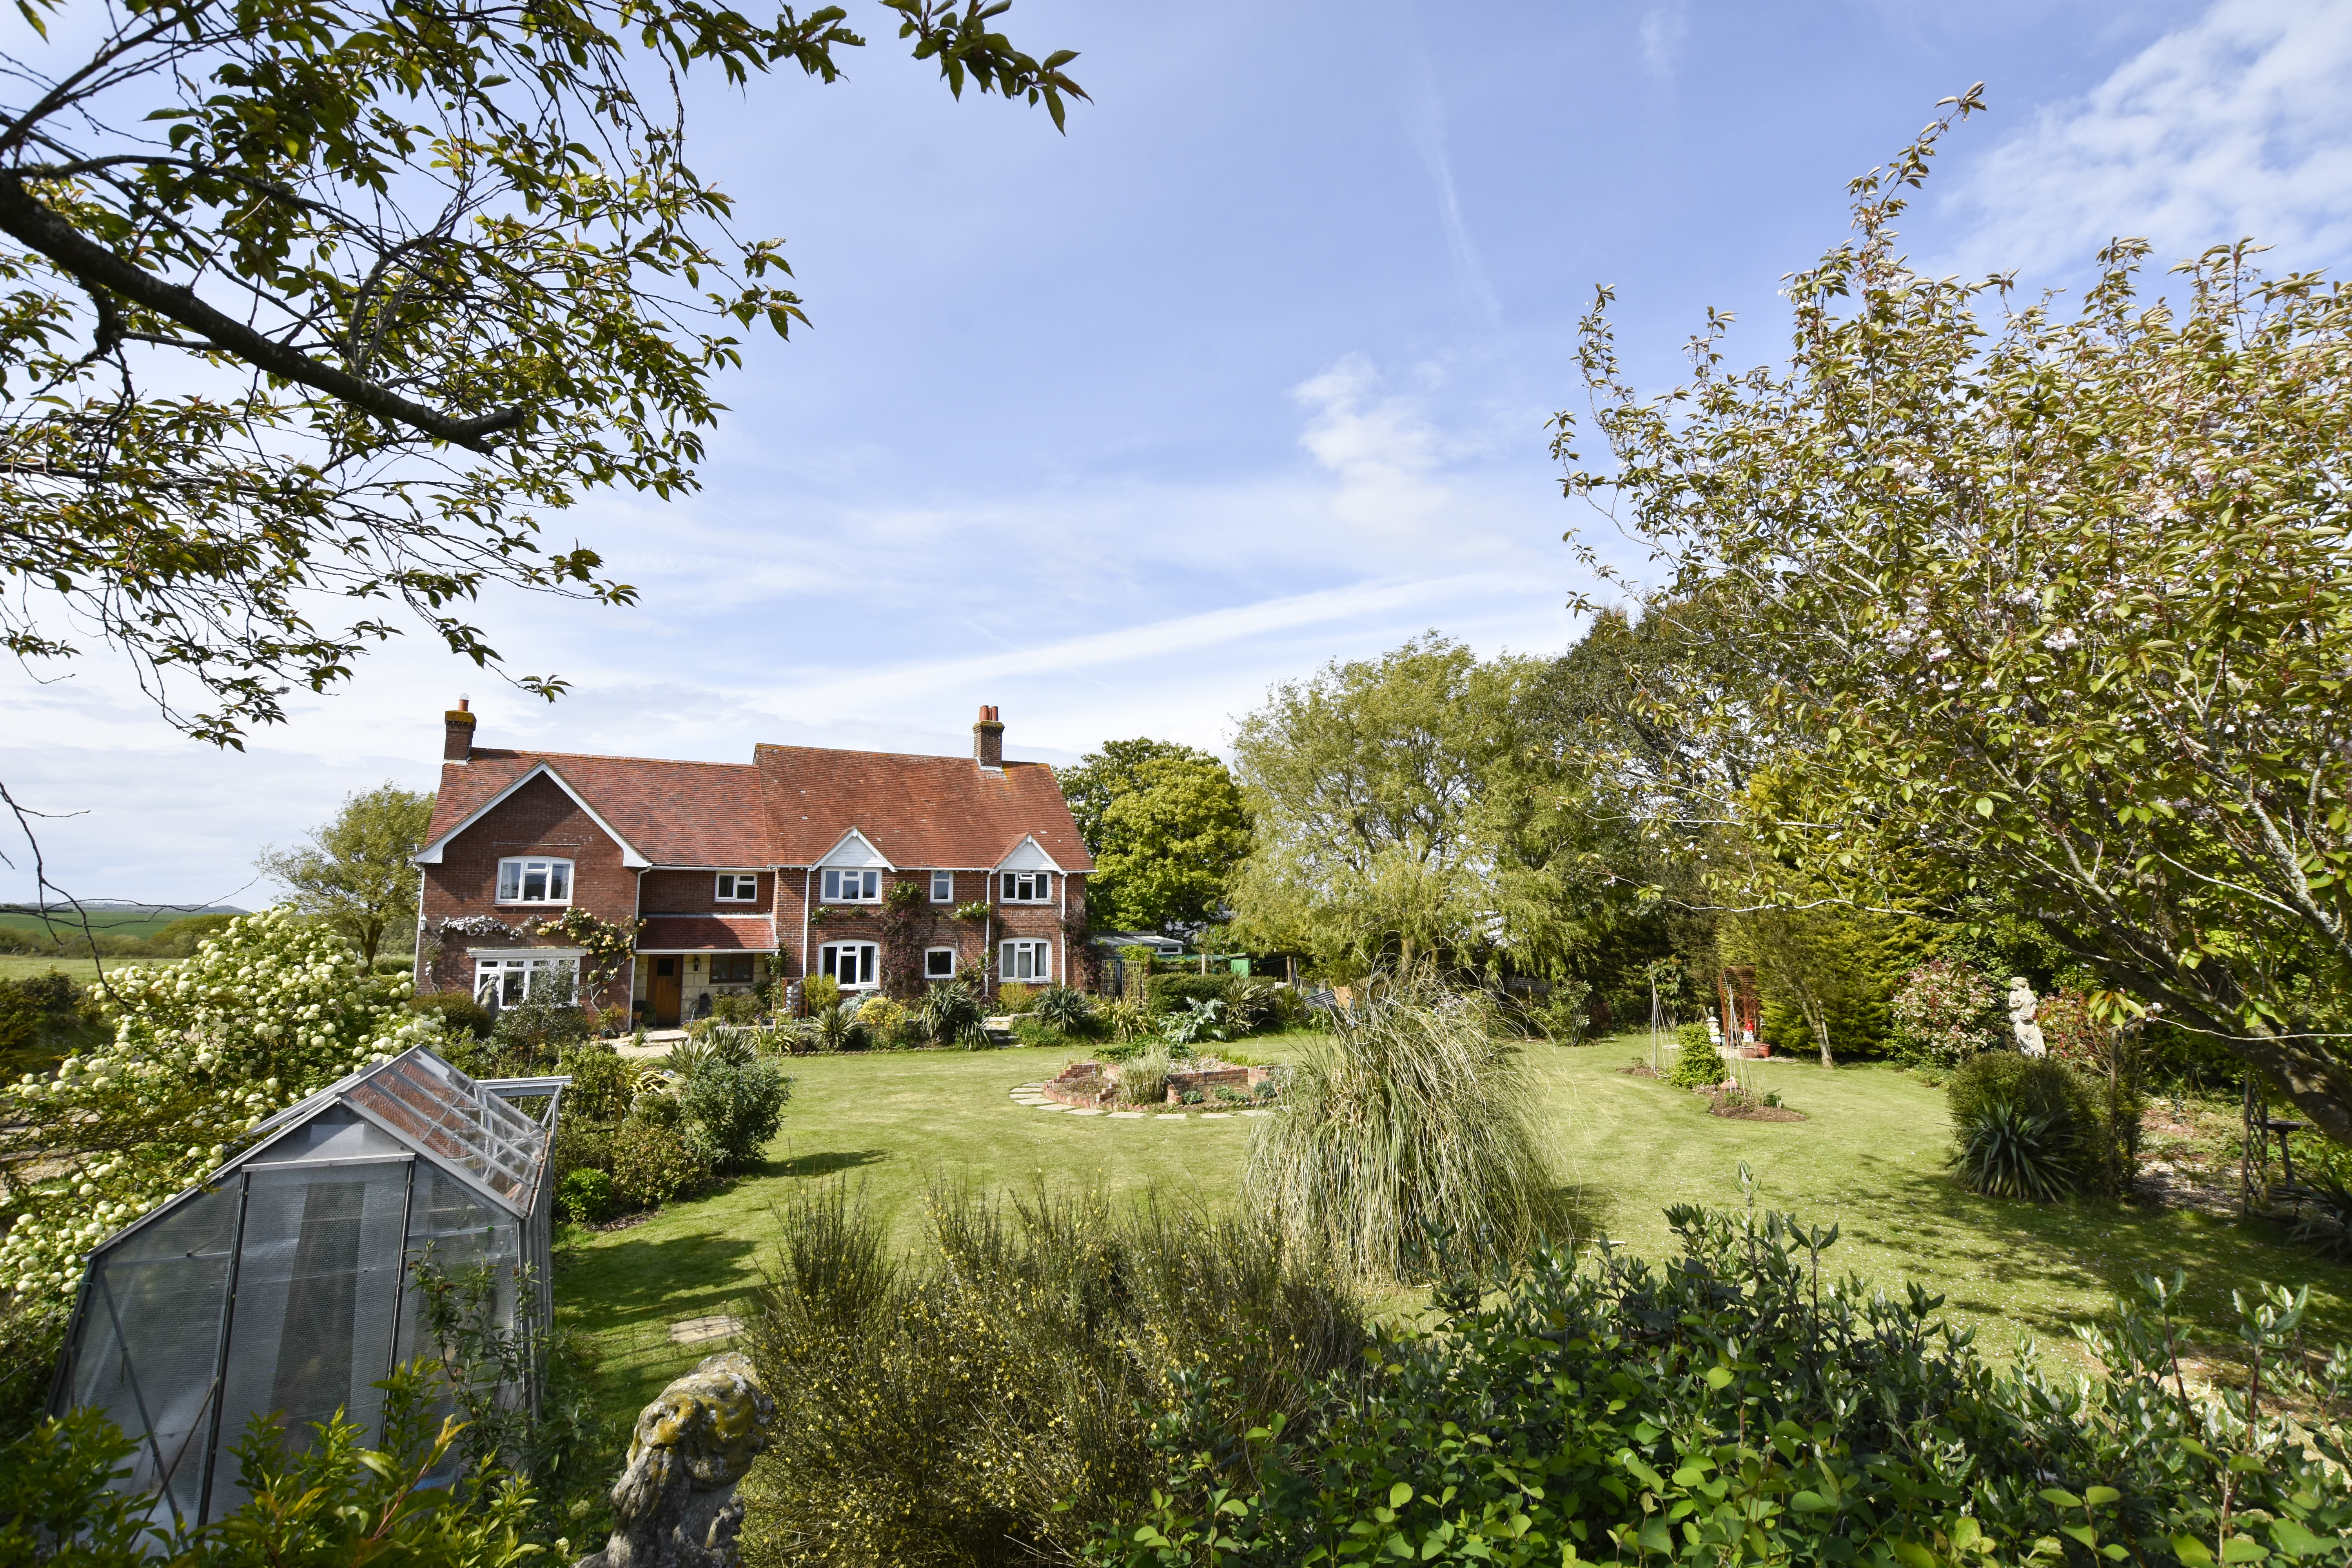 Ford Farm House Isle of Wight Bed & Breakfast